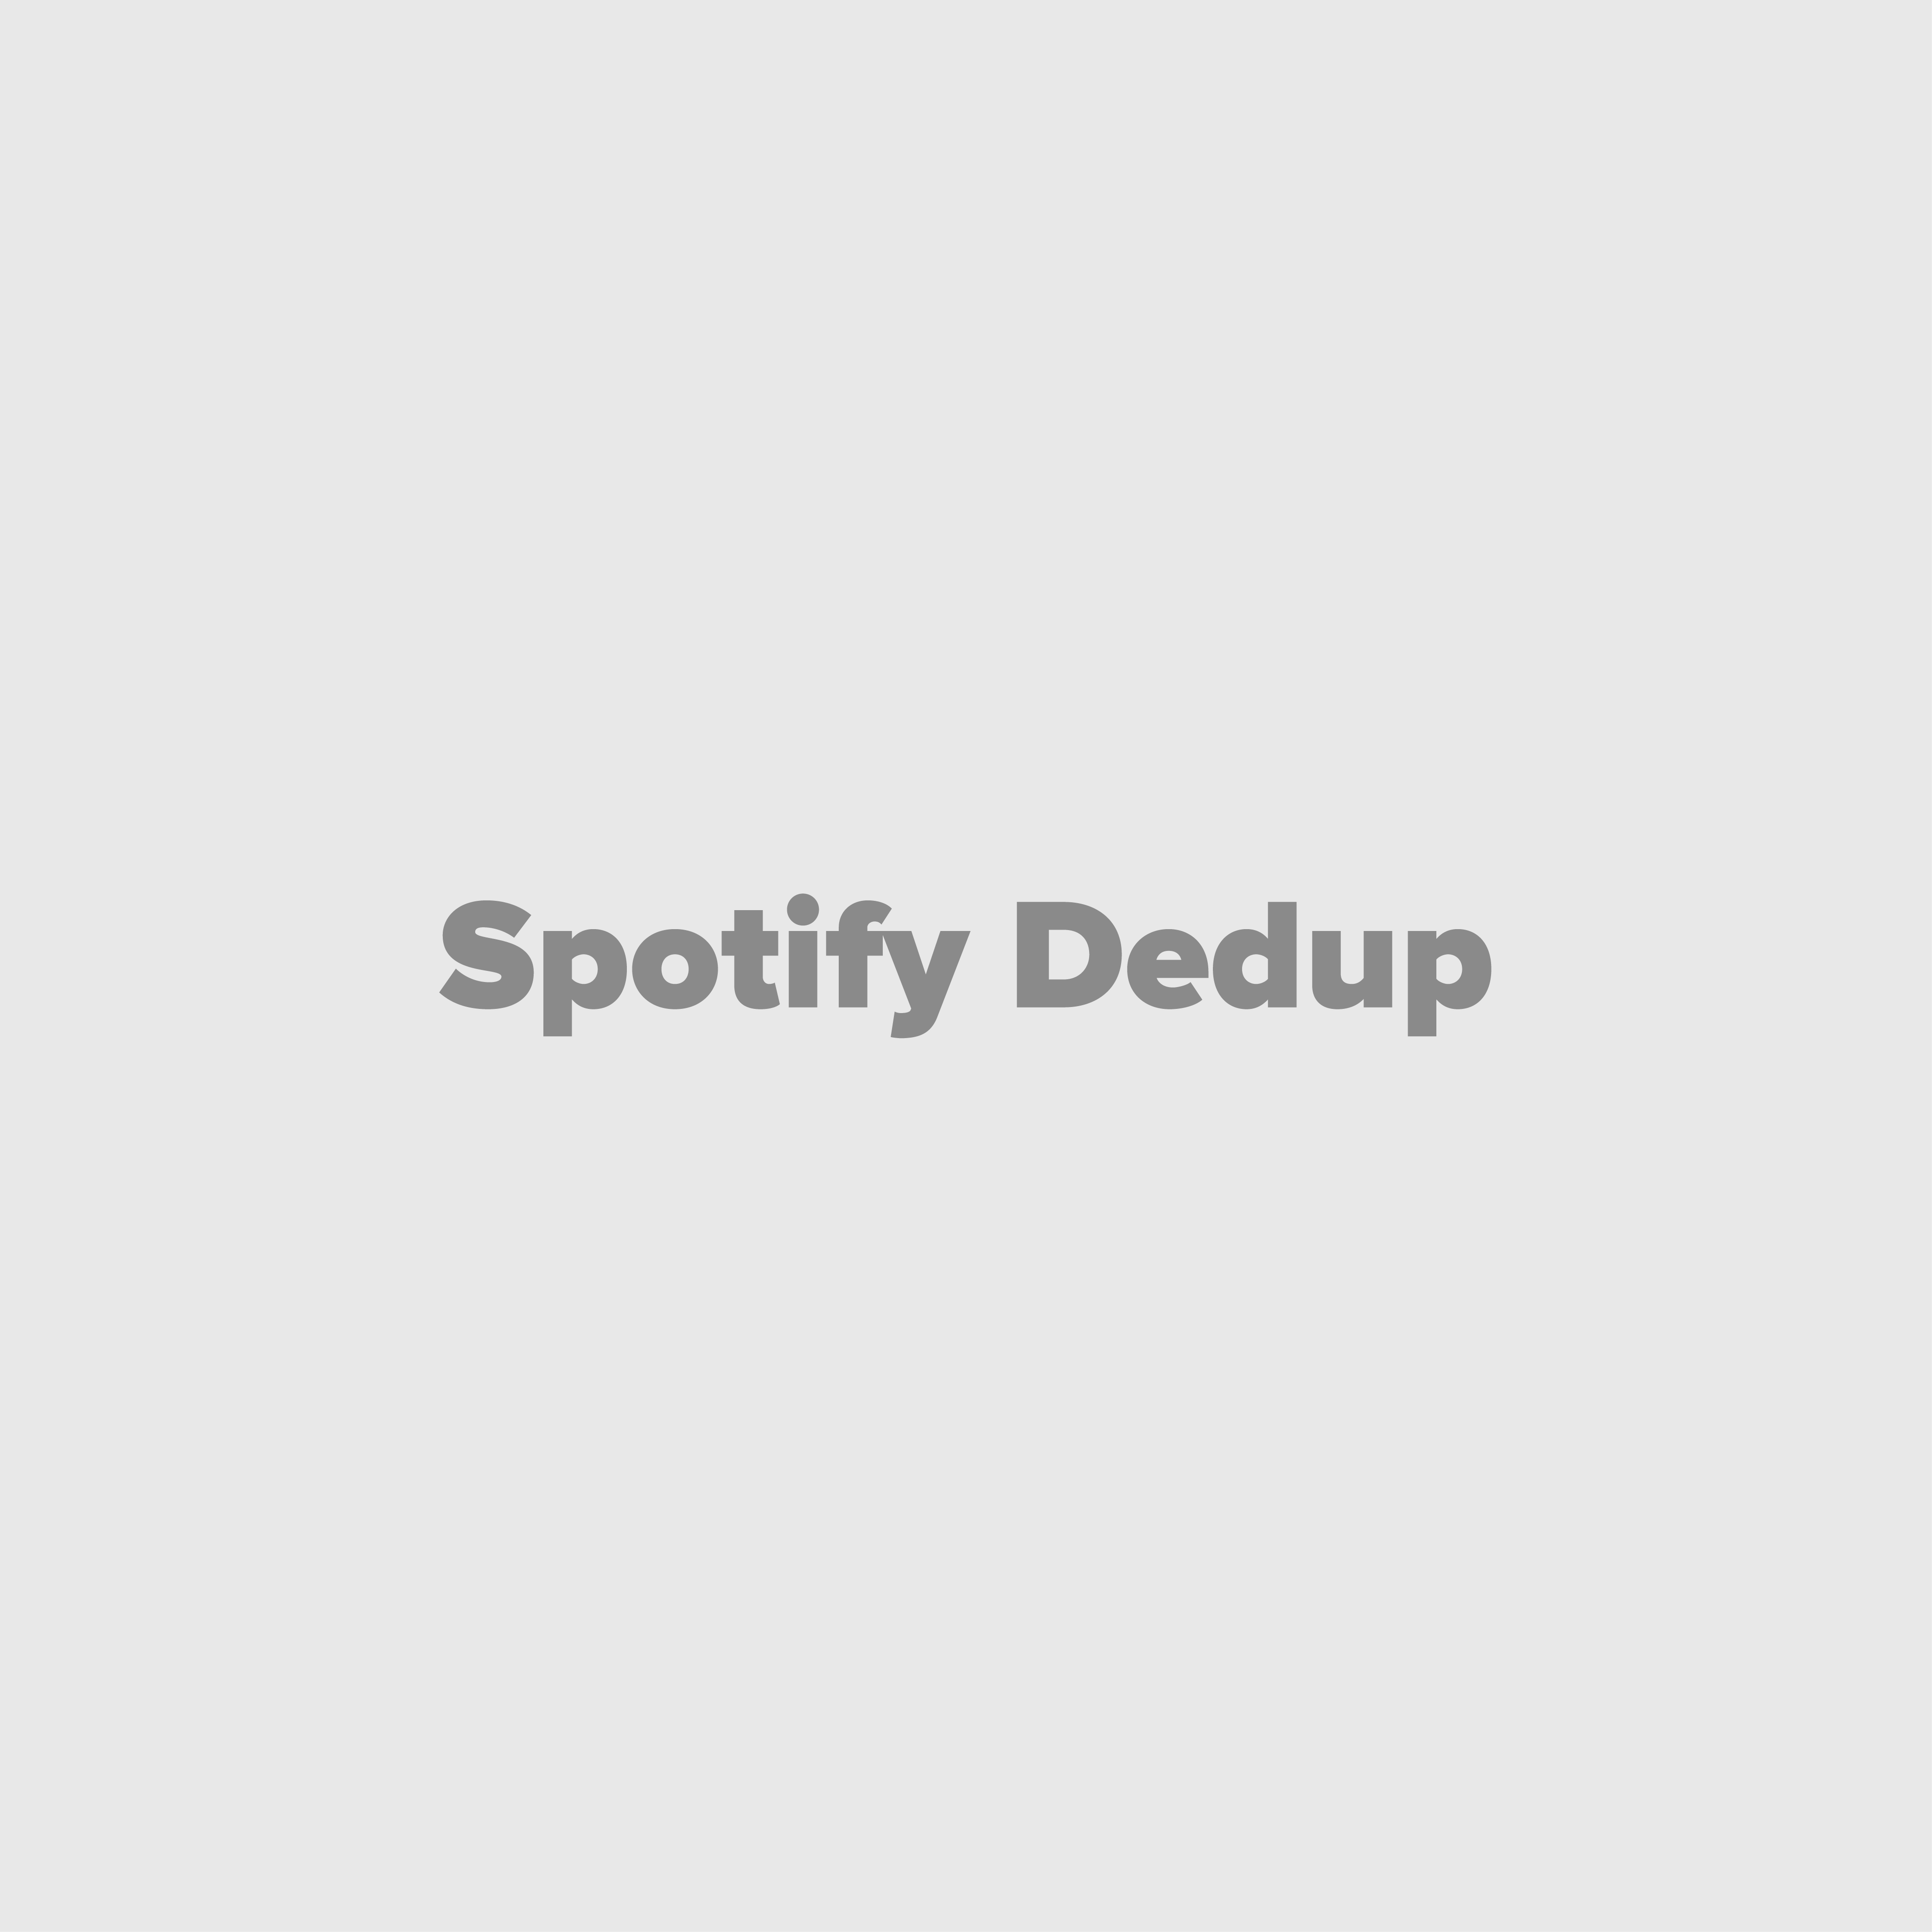 thumbnail for spotify-dedup/image.png